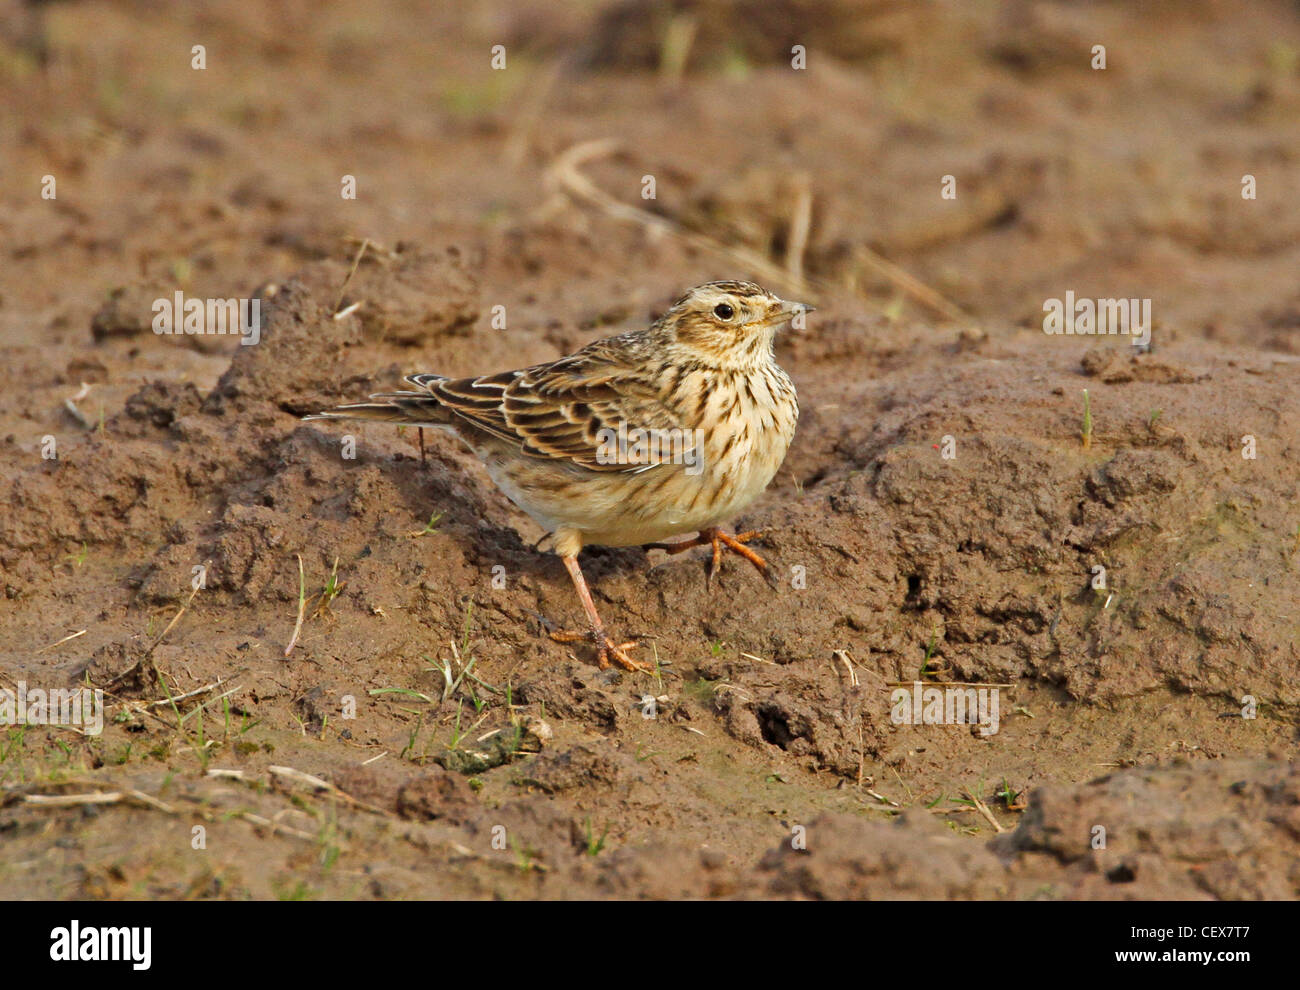 Skylark on the ground - Stock Image